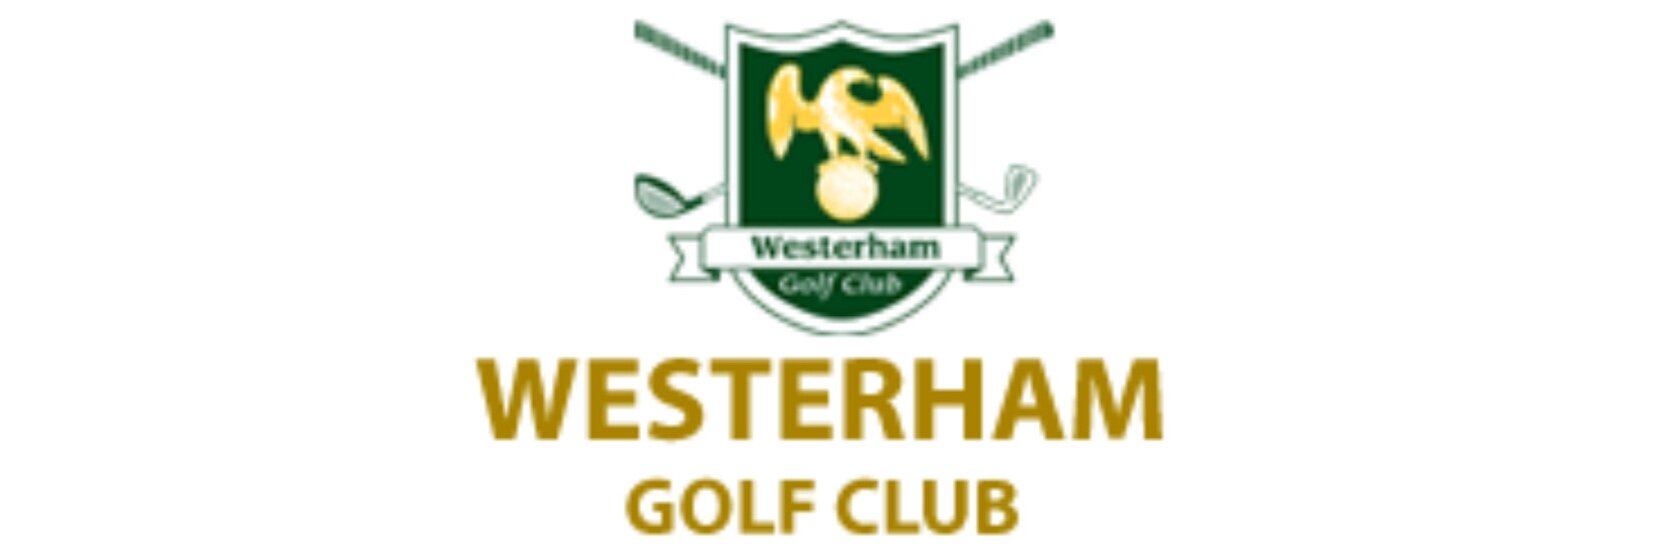 Westerham+Golf+Club+Recommended+Supplier